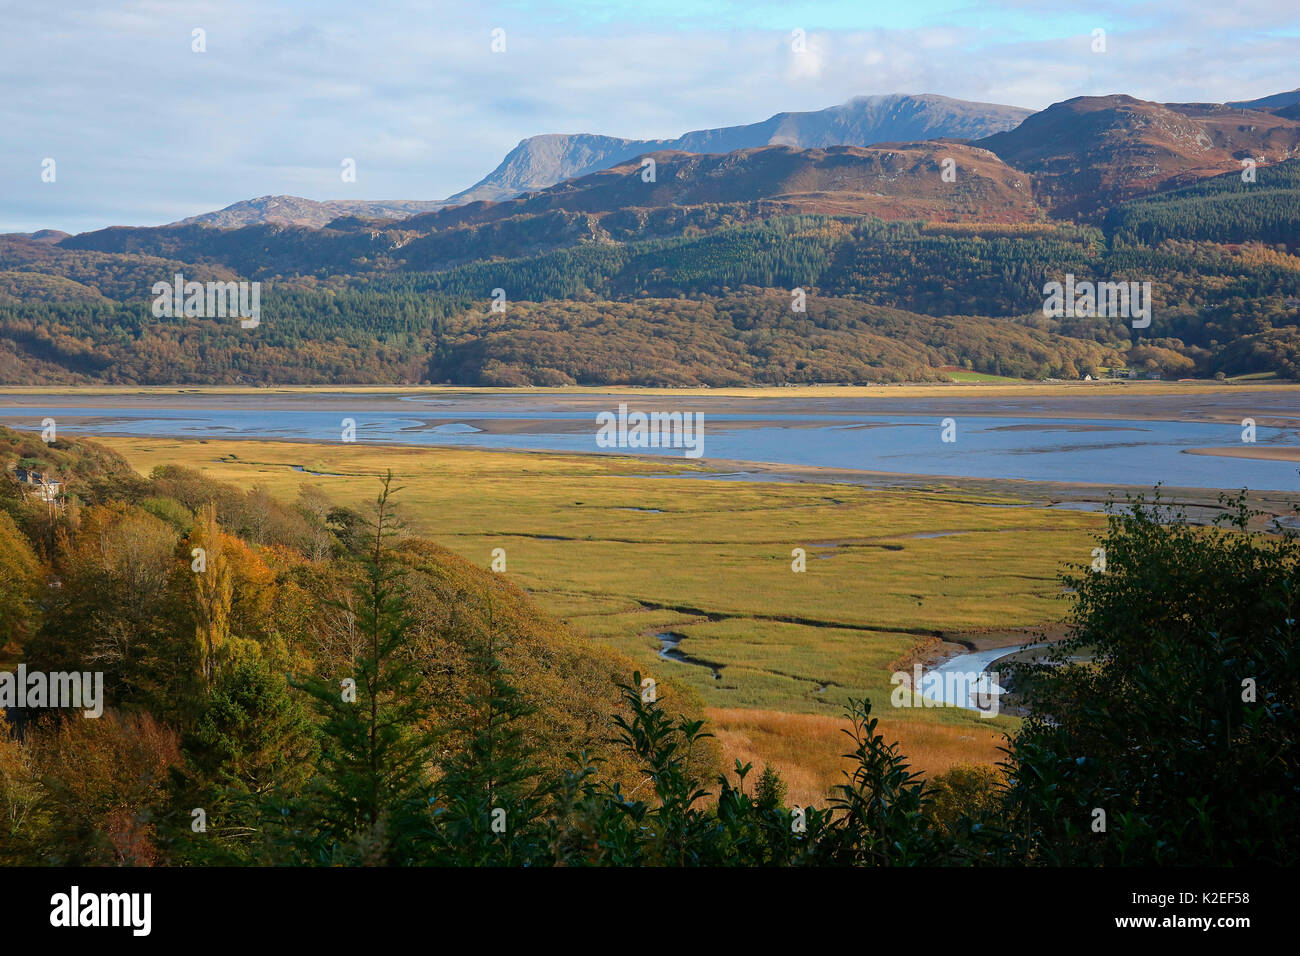 The Mawddach Estuary, West Wales, Wales, UK. October. - Stock Image